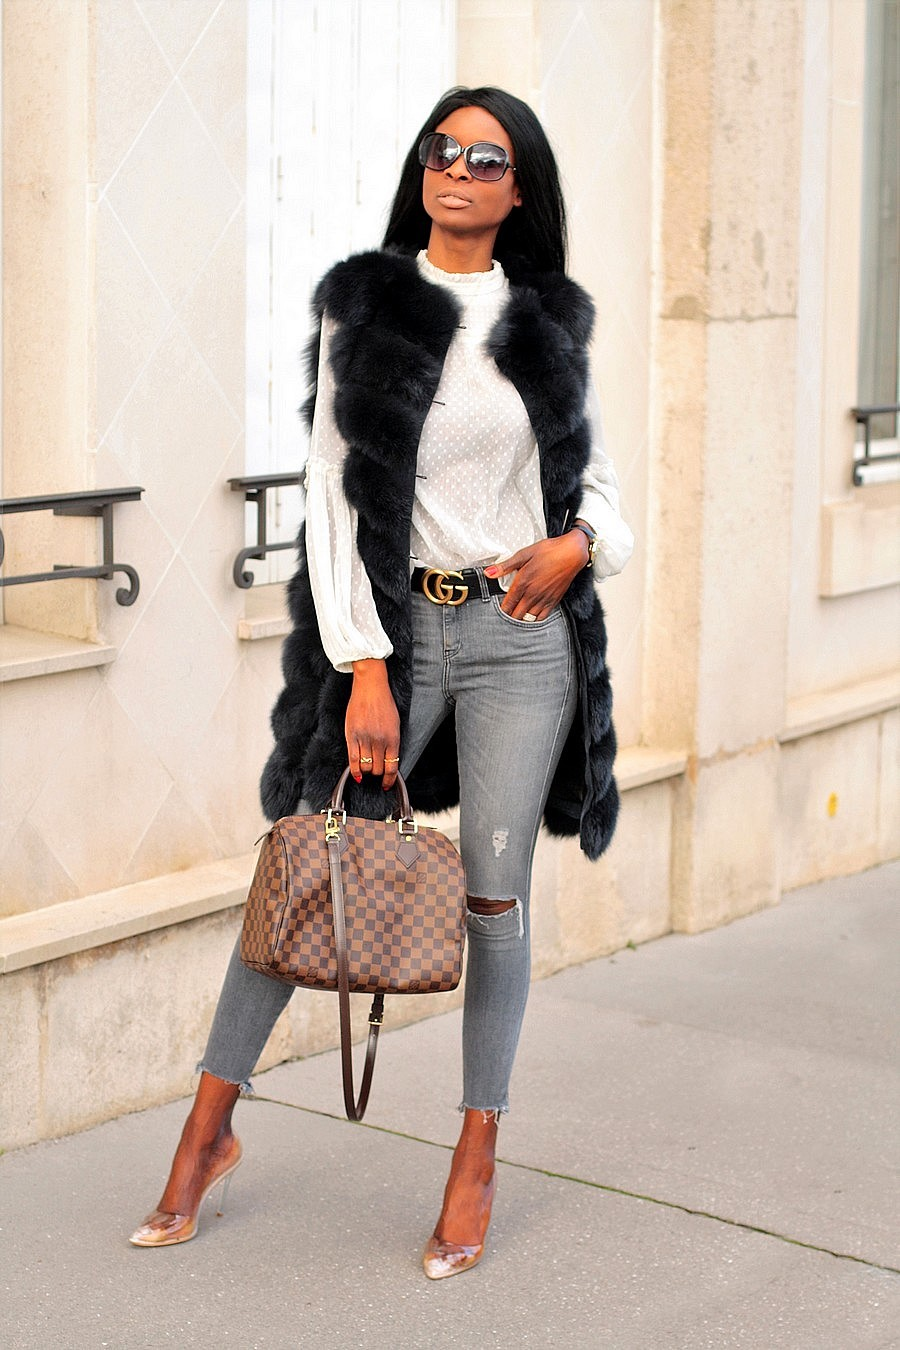 tendance-chaussures-transparentes-perspex-blog-mode